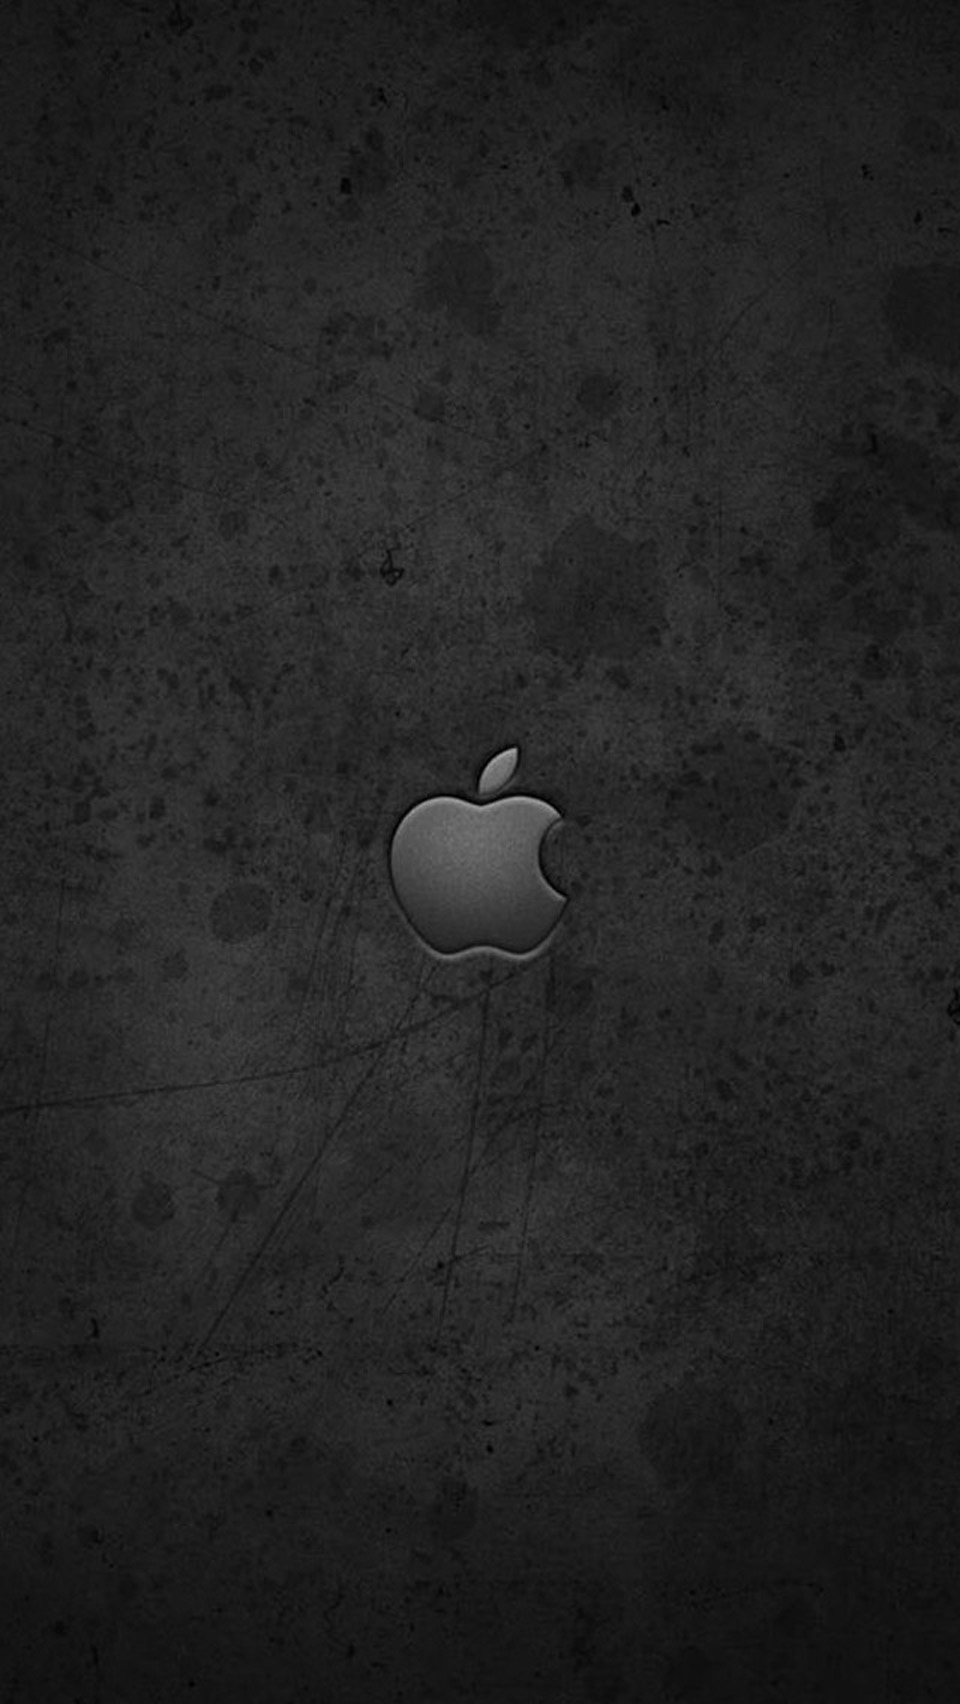 Iphone Wallpaper Size Here we have various of Iphone Wallpaper Size 960x1704